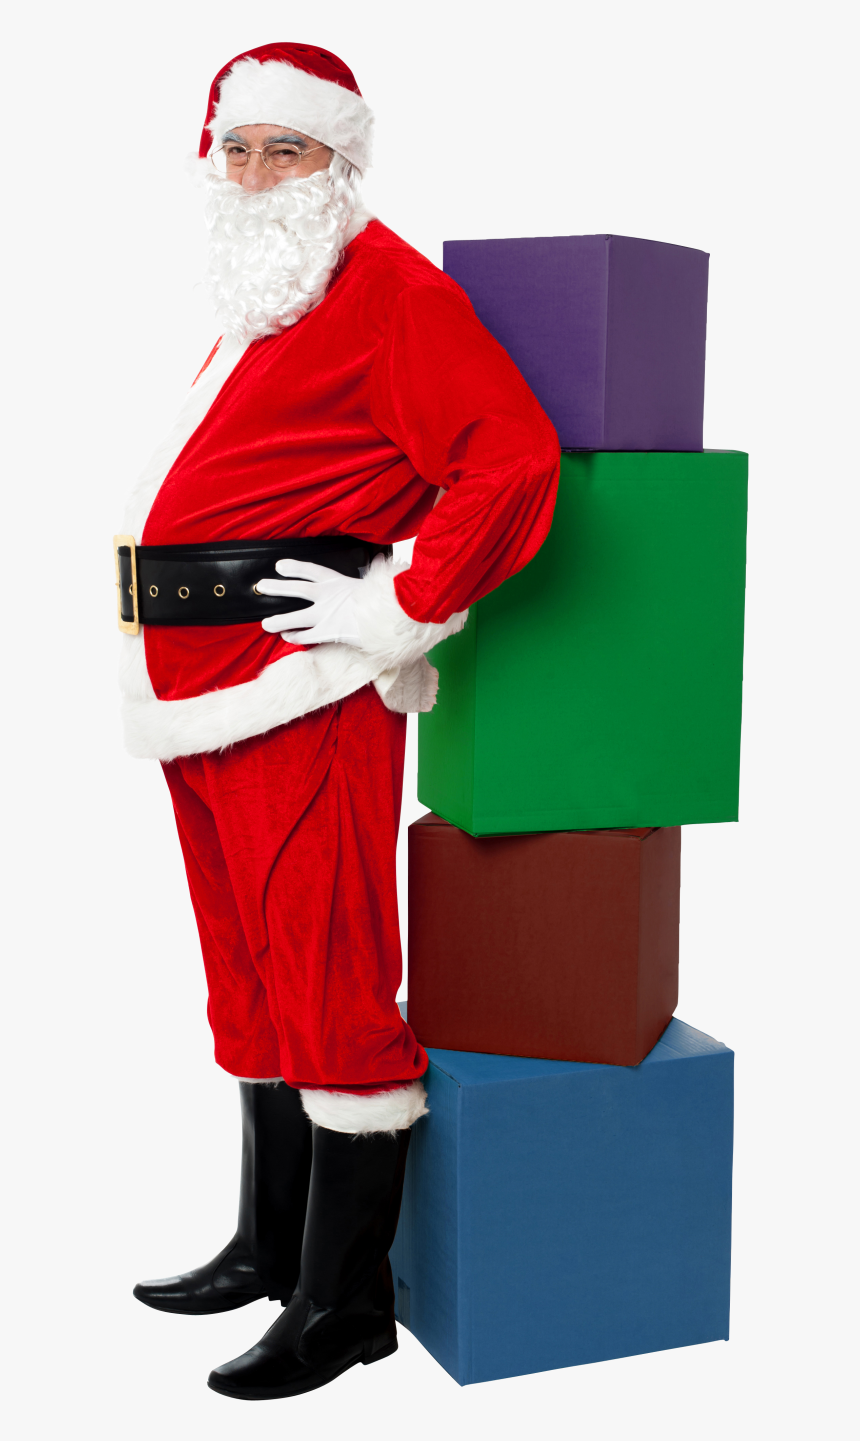 Santa Claus With Four Boxes Png Image - Christmas Day, Transparent Png, Free Download